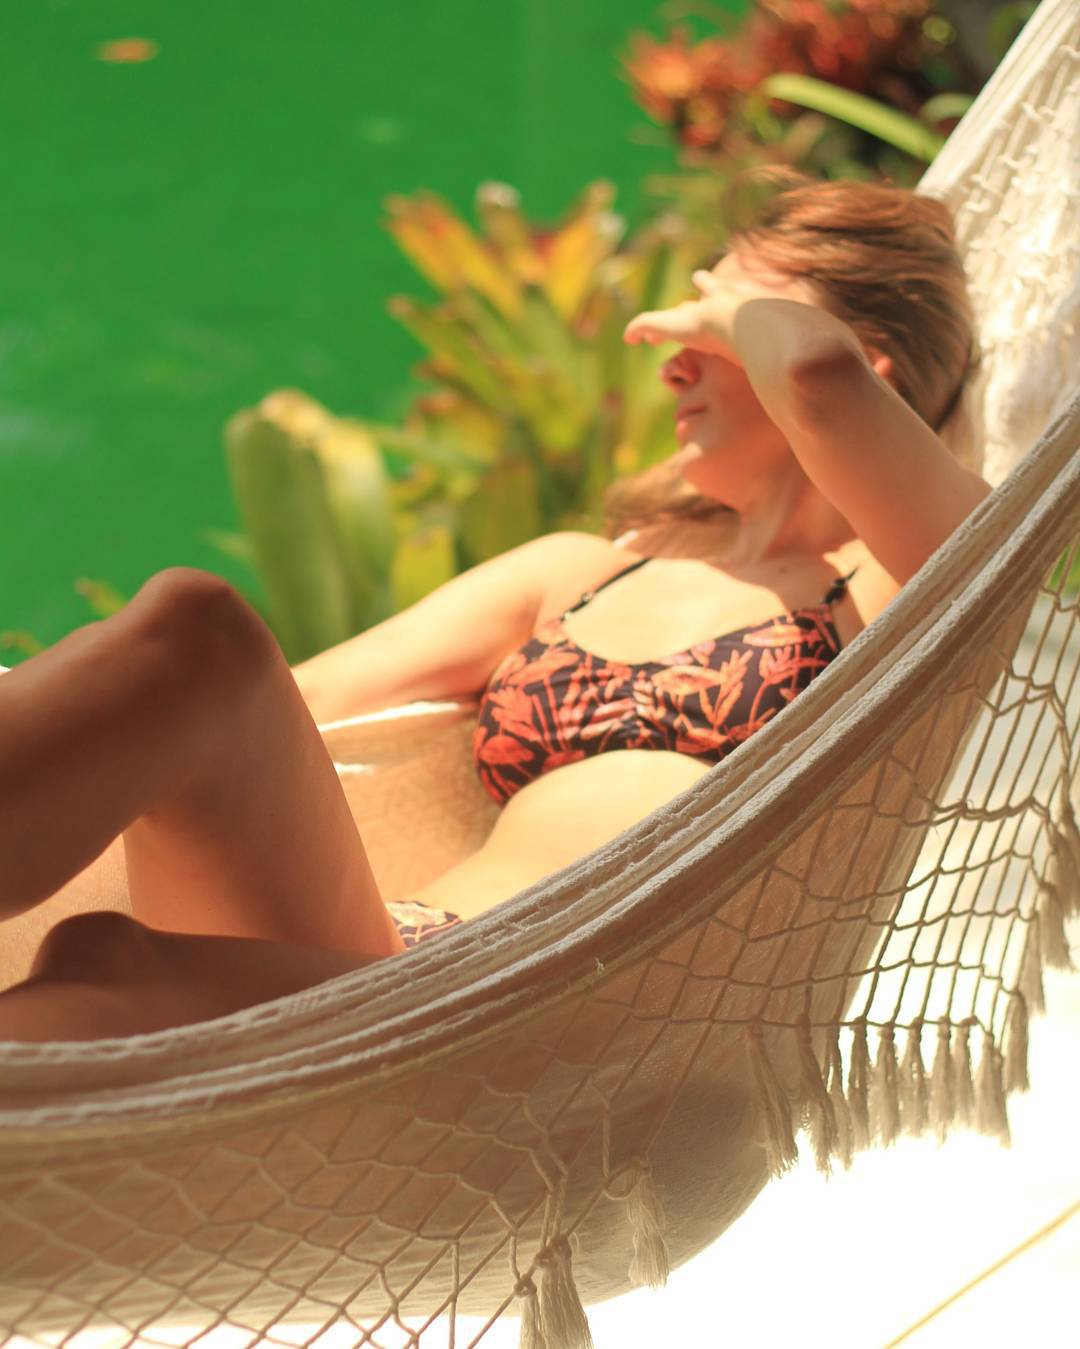 Chill in a hammock #katwai #swimwear #beachlife #brasil